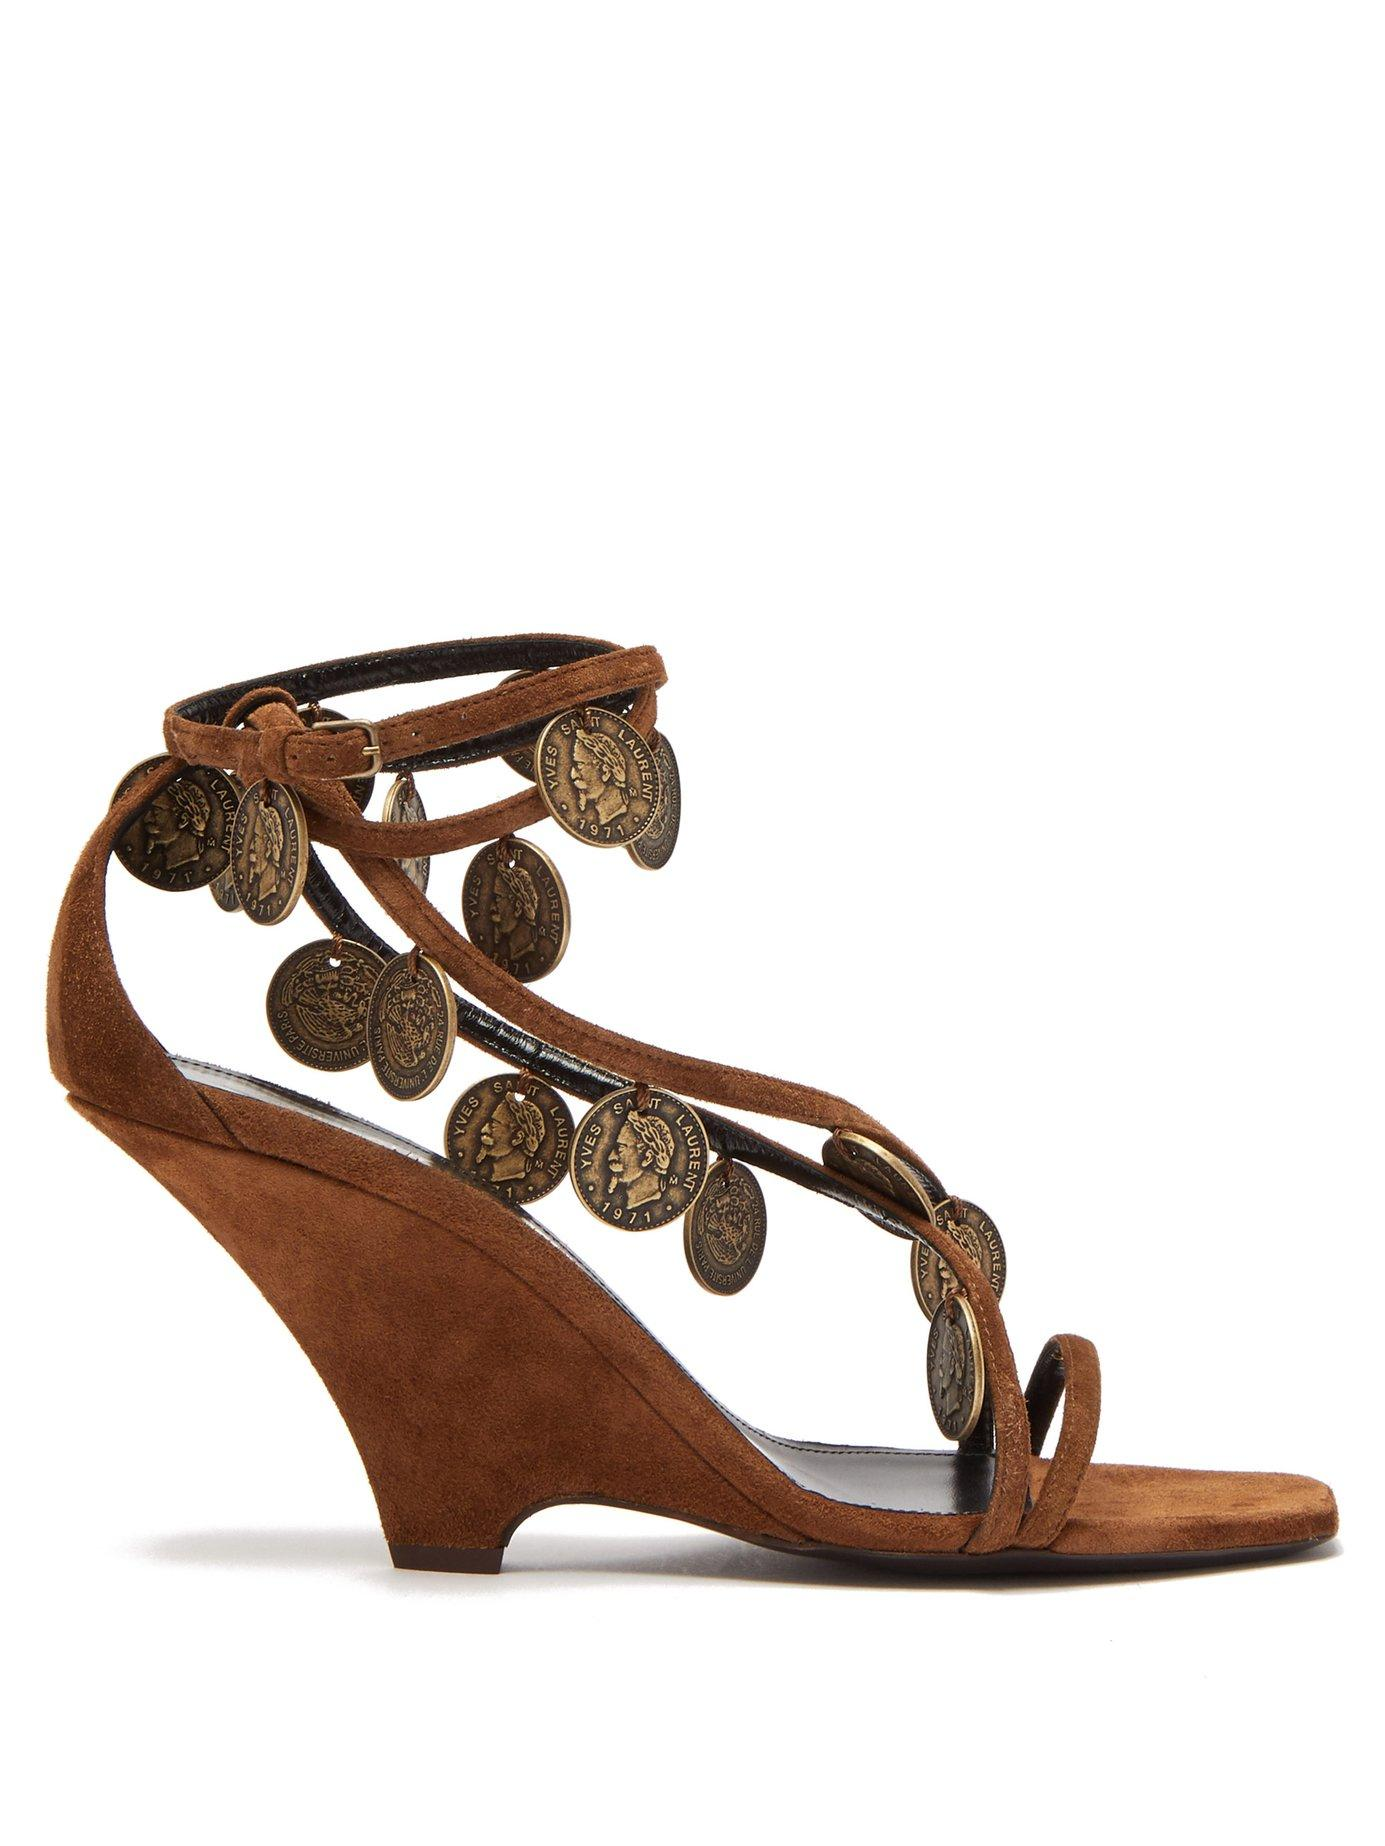 e2e8b4a675b Lyst - Saint Laurent Kim Coin Embellished Suede Wedge Sandals in Brown